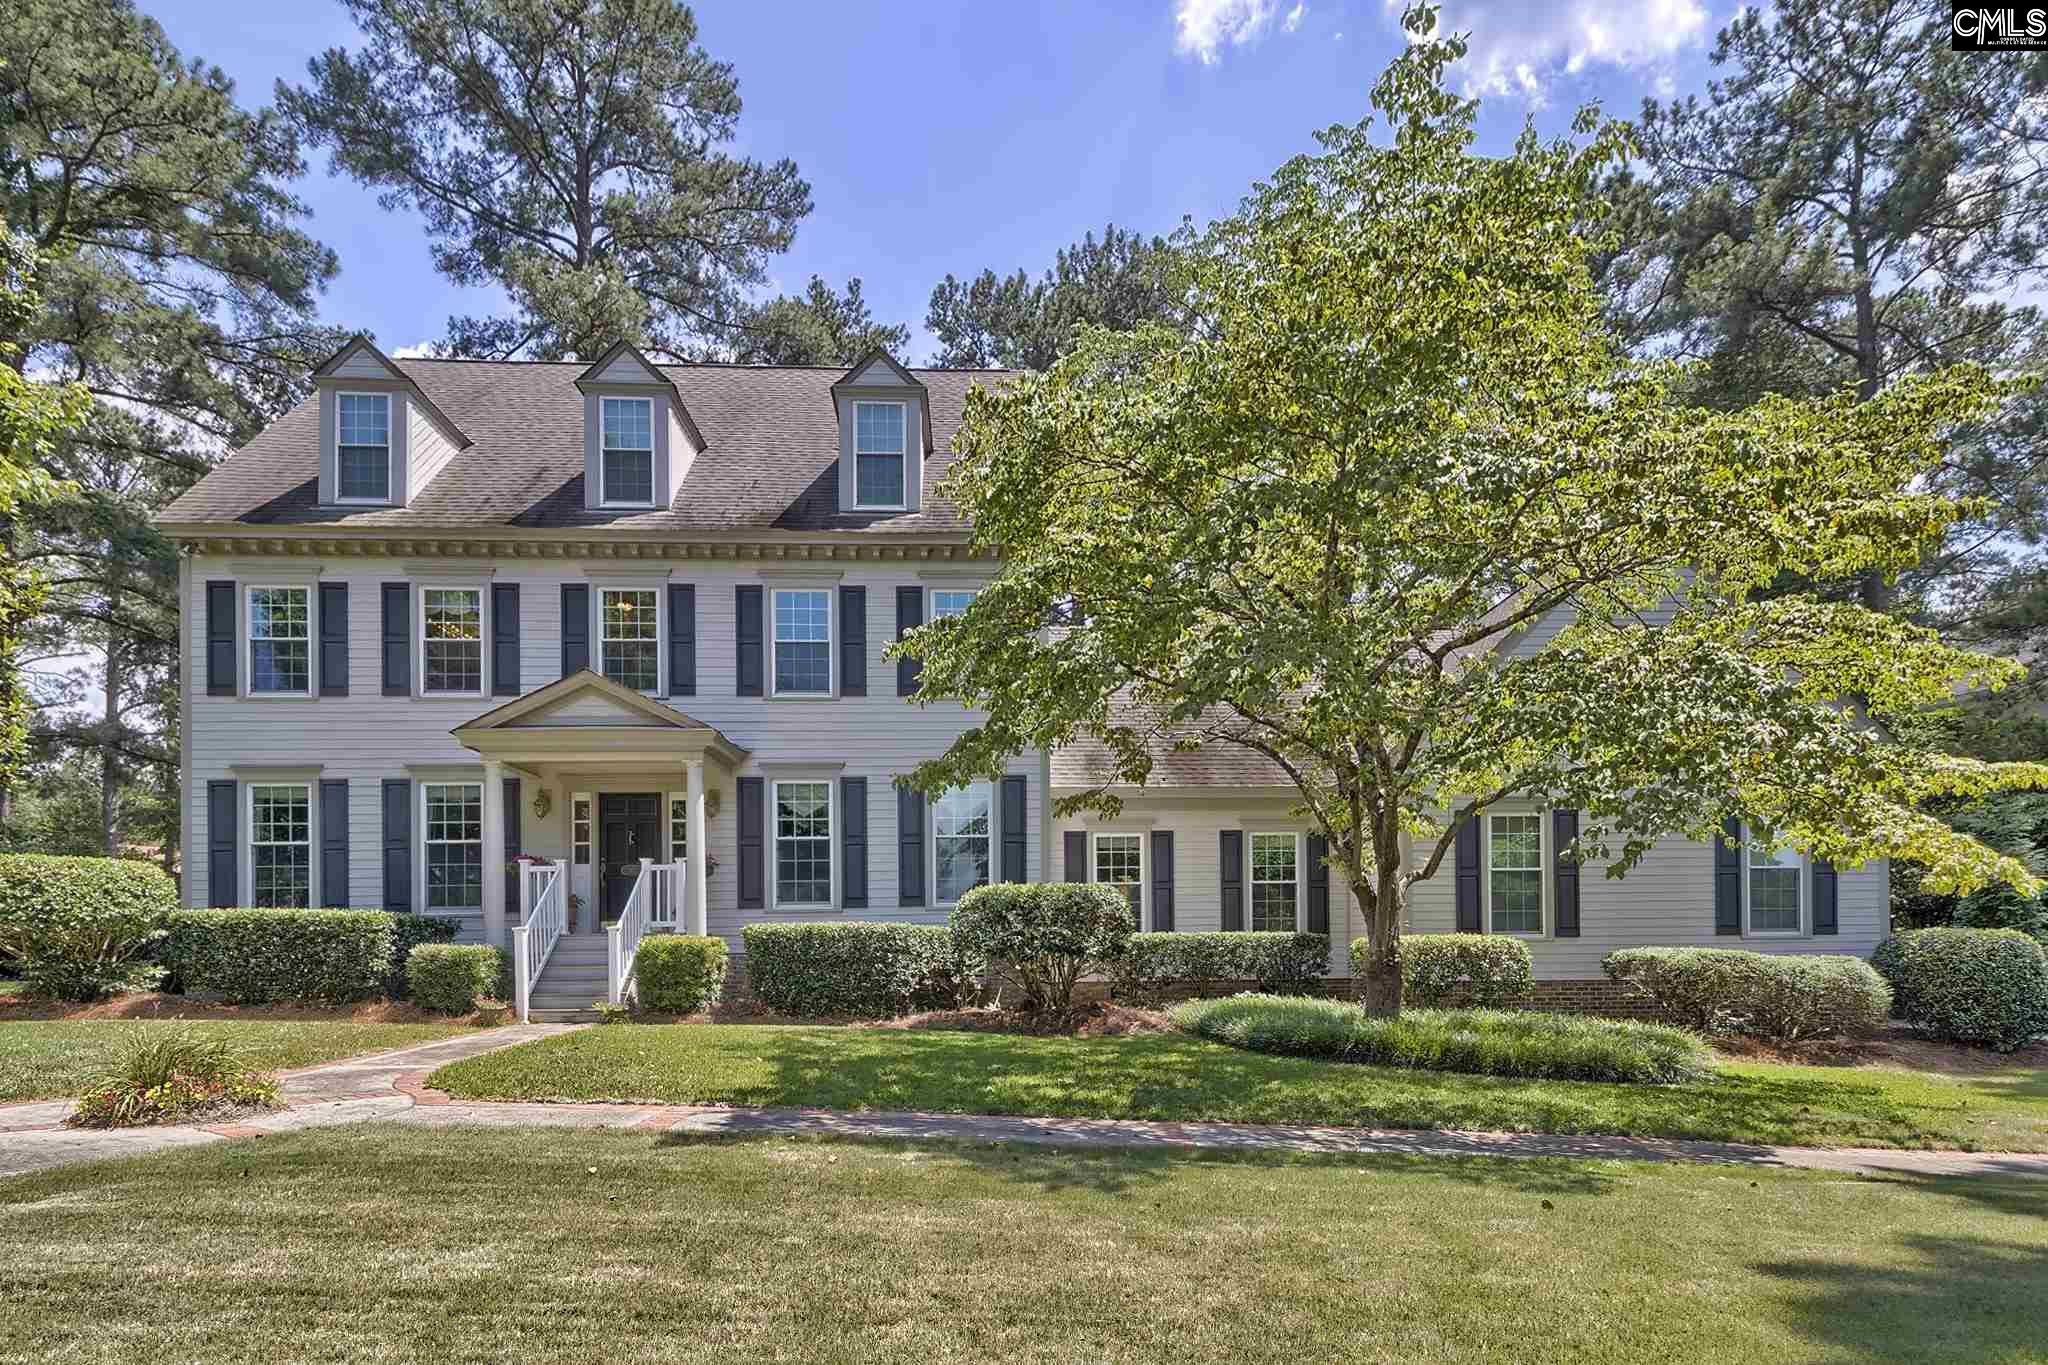 111 Holliday Columbia, SC 29223